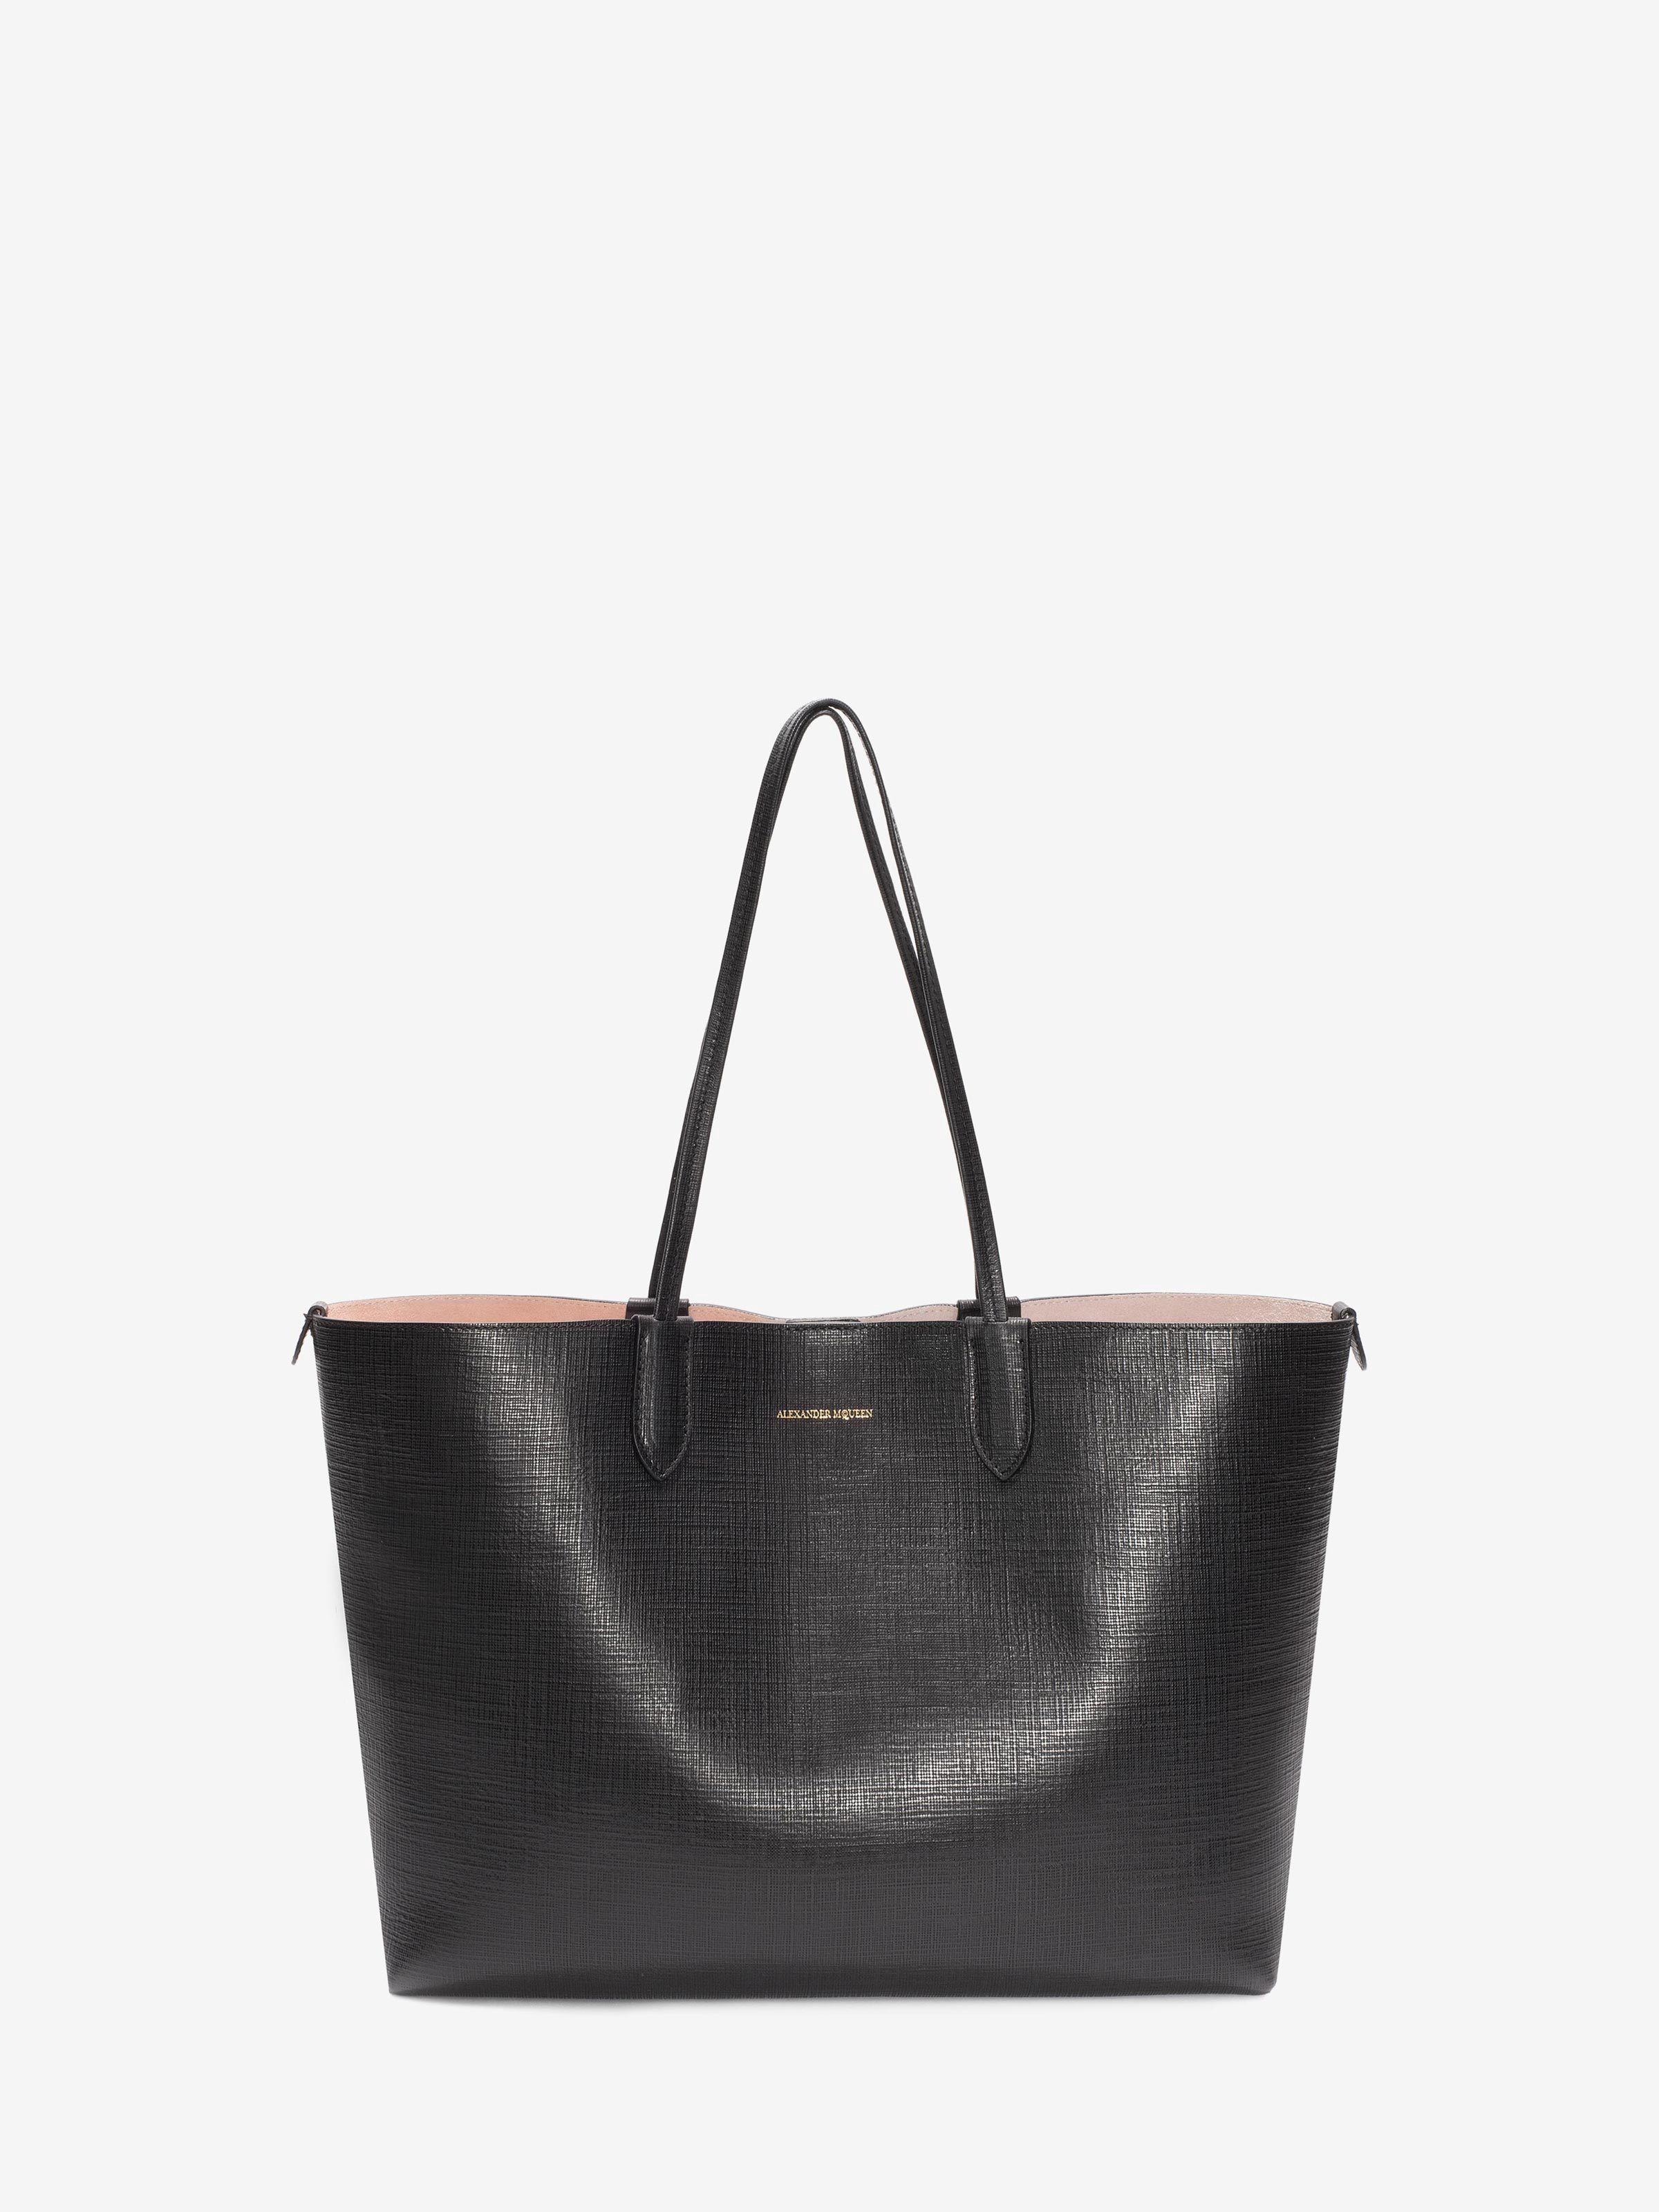 Alexander McQueen large shopper tote Huge Surprise Cheap Online Low Cost With Paypal Online Sast Online LahkUoexd